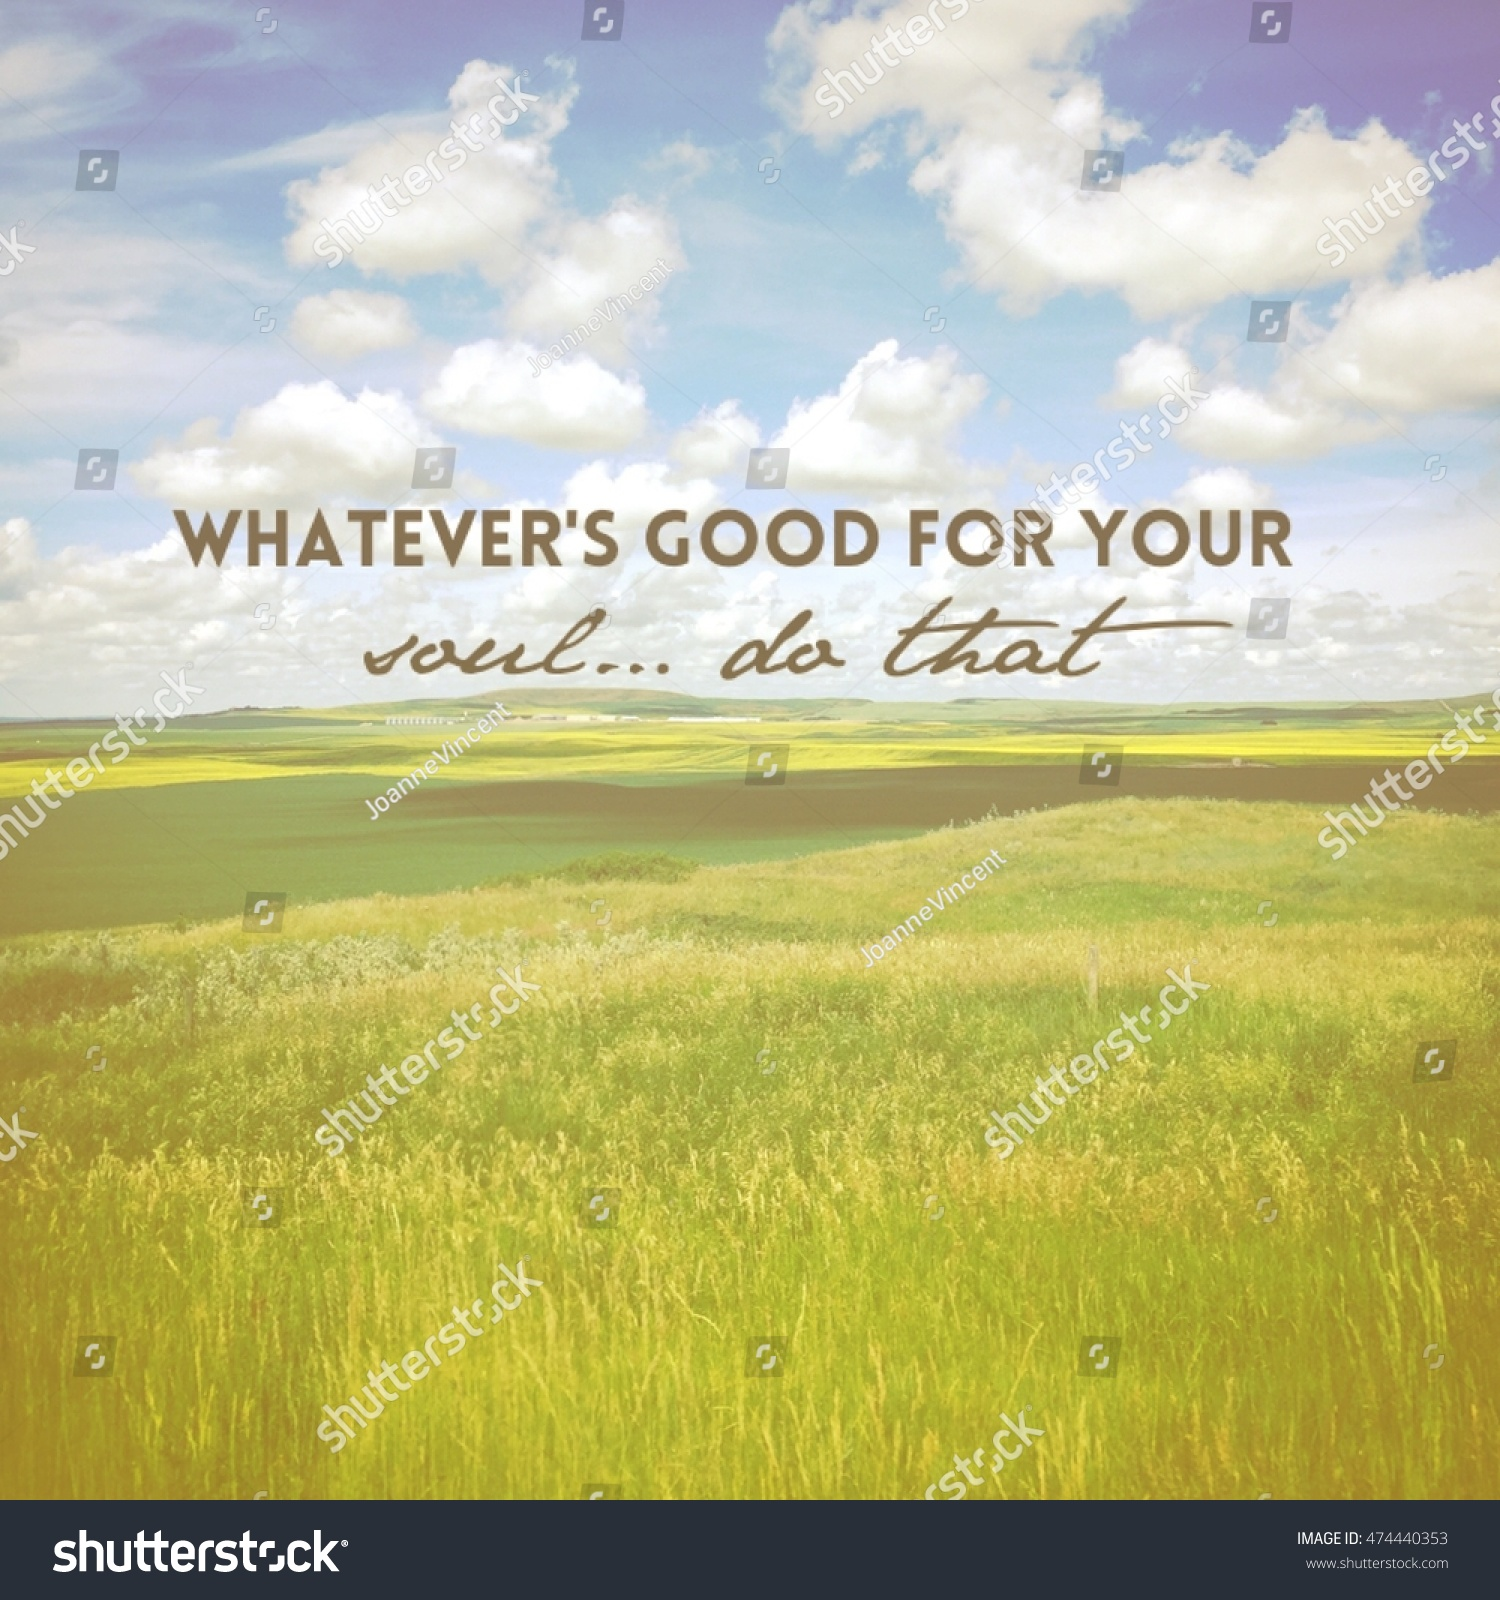 Farmers Quote Farmers Field Inspirational Quote Whatevers Good Stock Photo